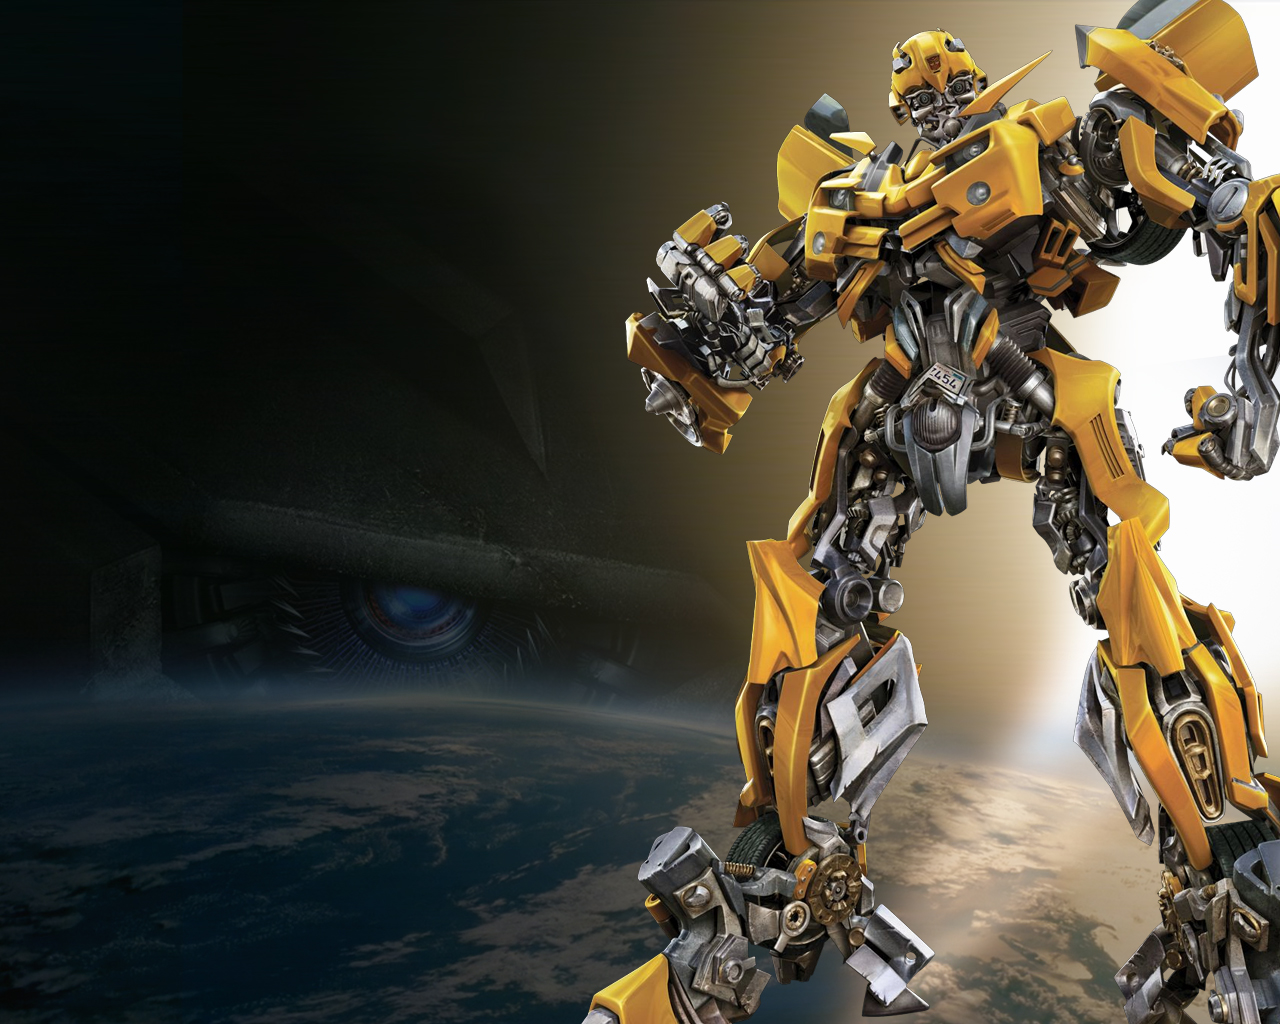 Transformers Wallpapers Photos beautifully pictured on 1280x1024